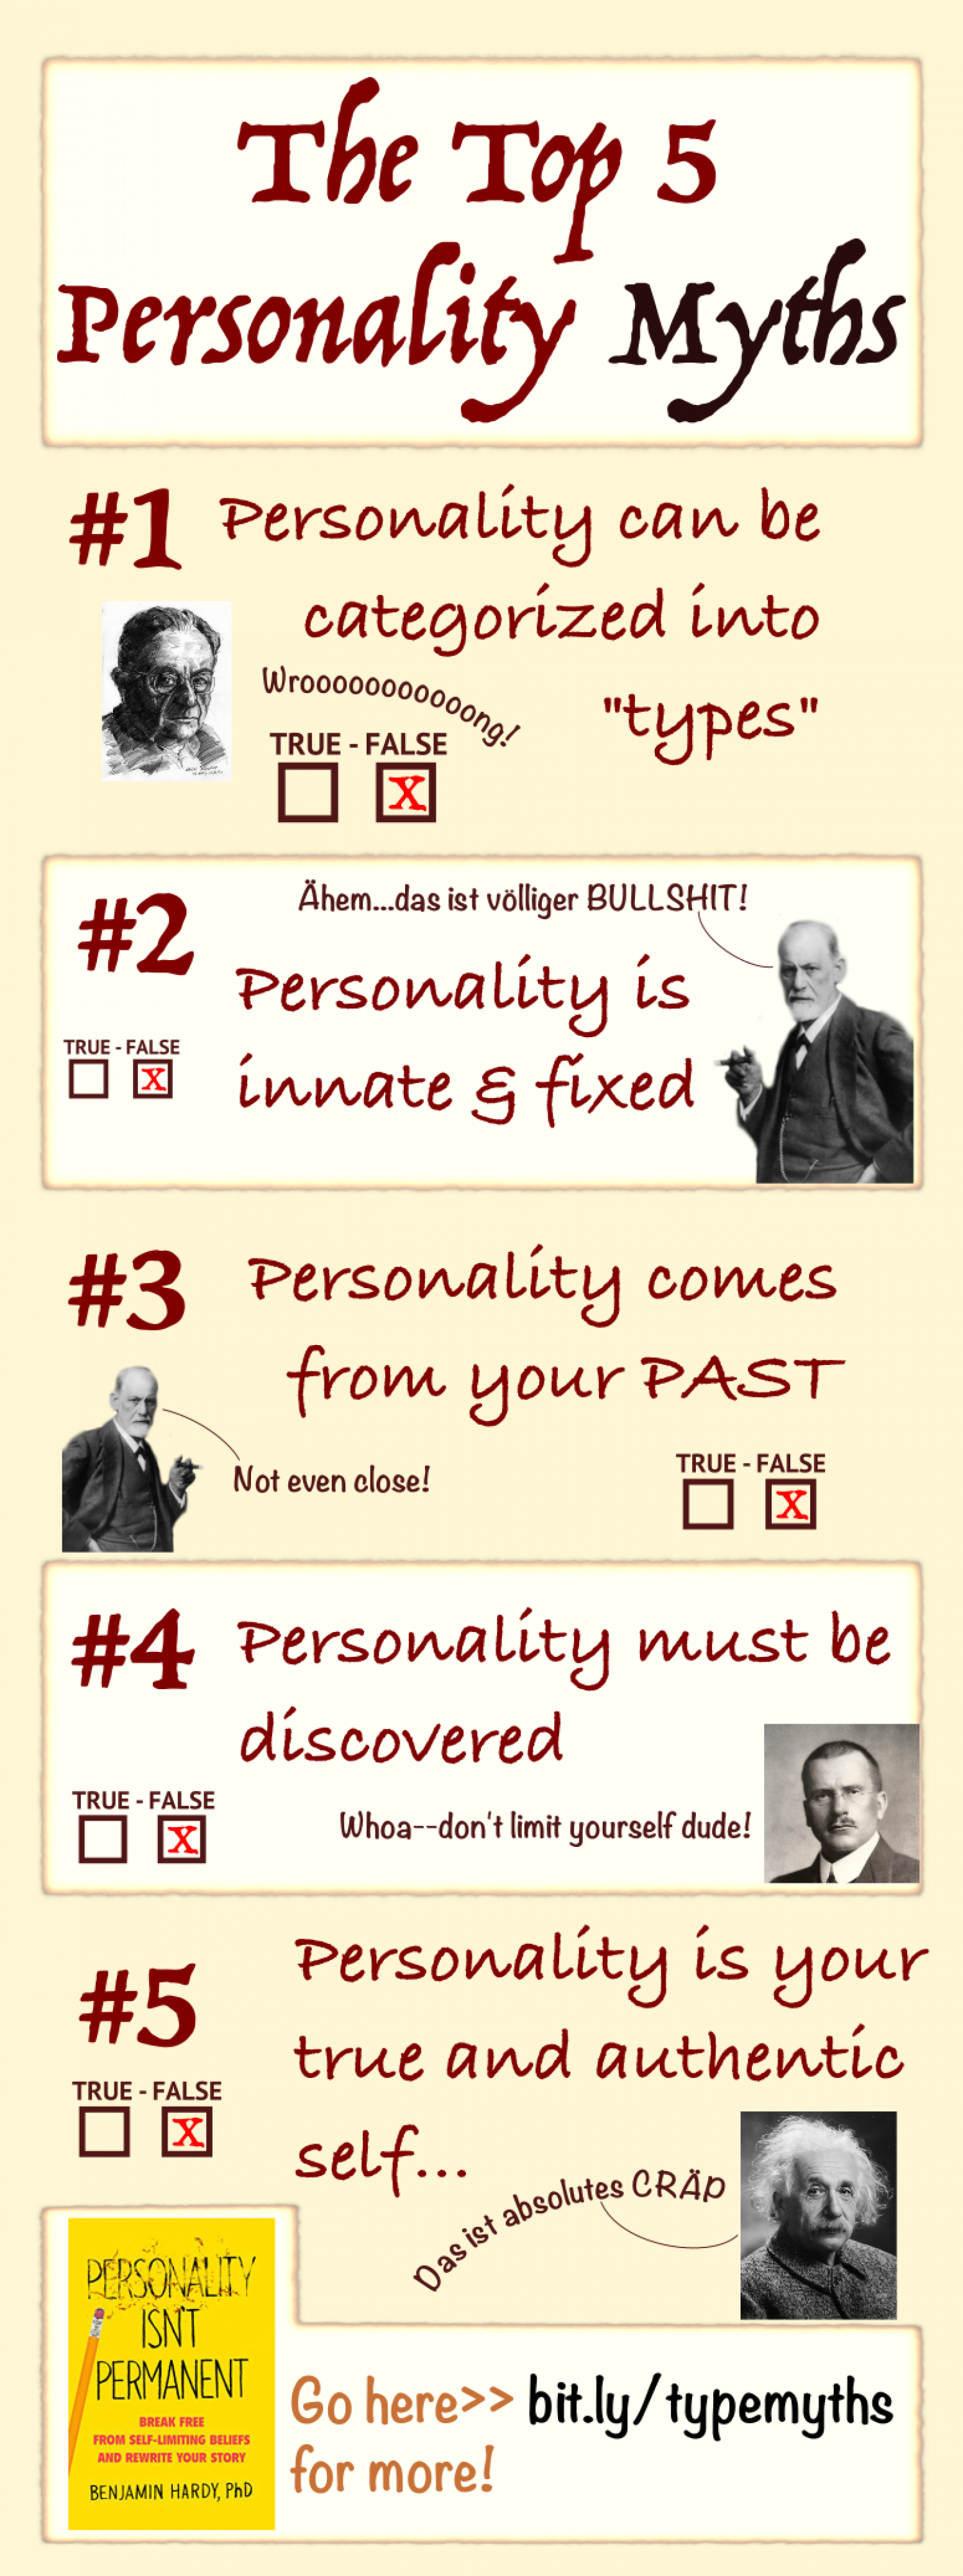 The Top 5 Personality Myths Infographic